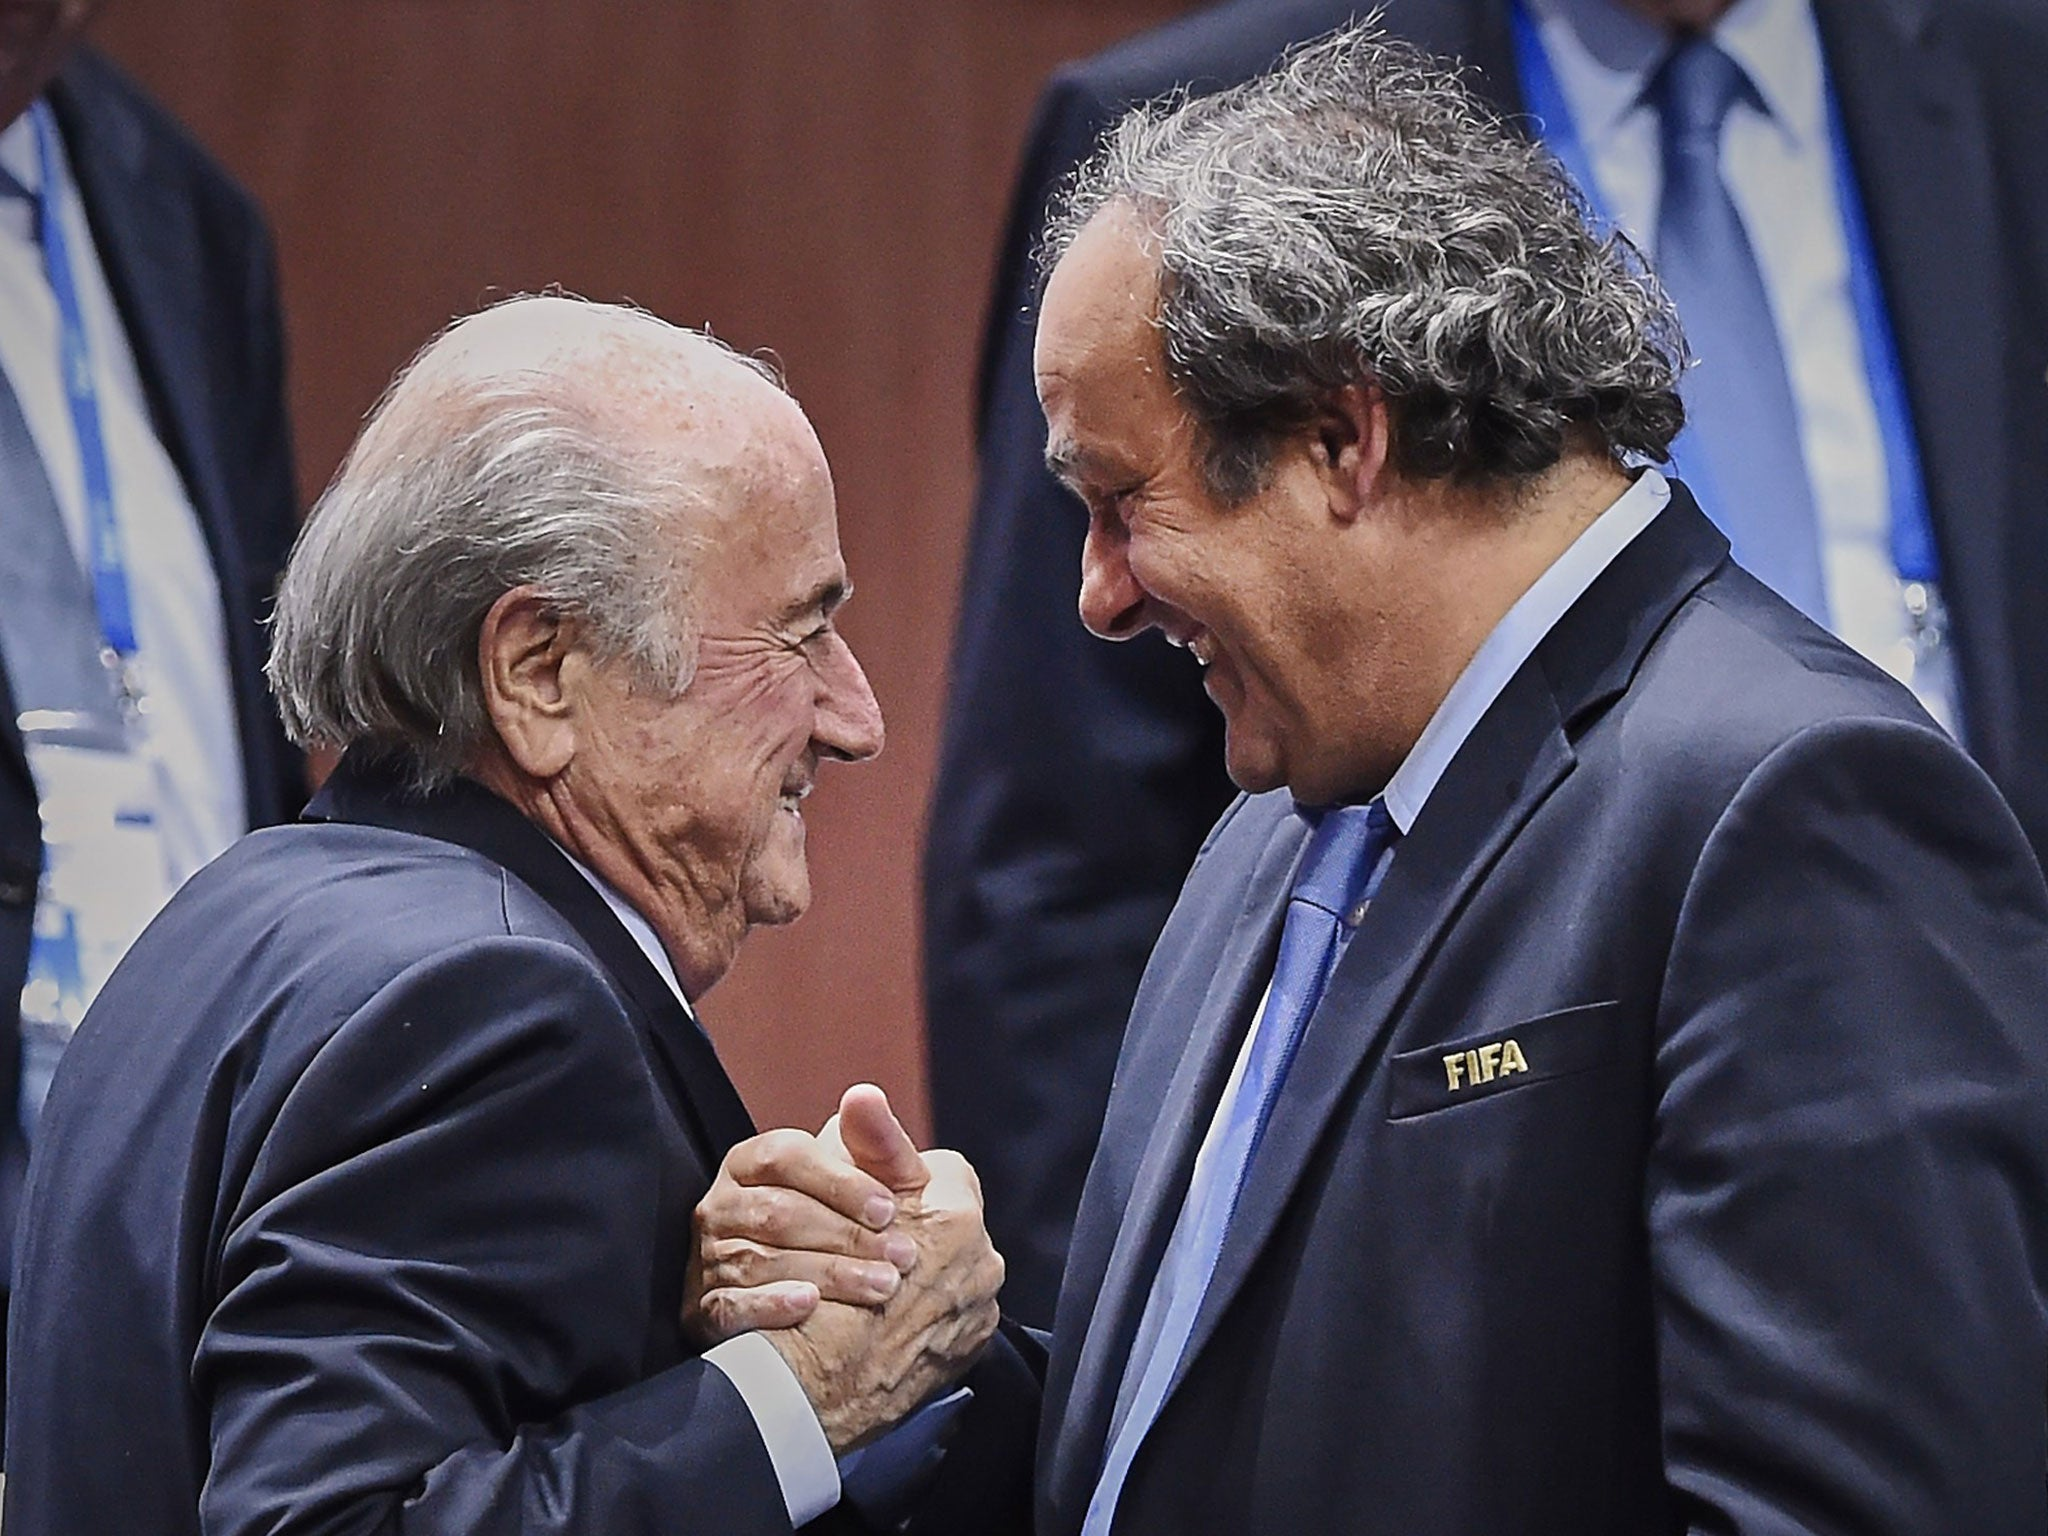 Sepp Blatter and Michel Platini have suspensions from football cut